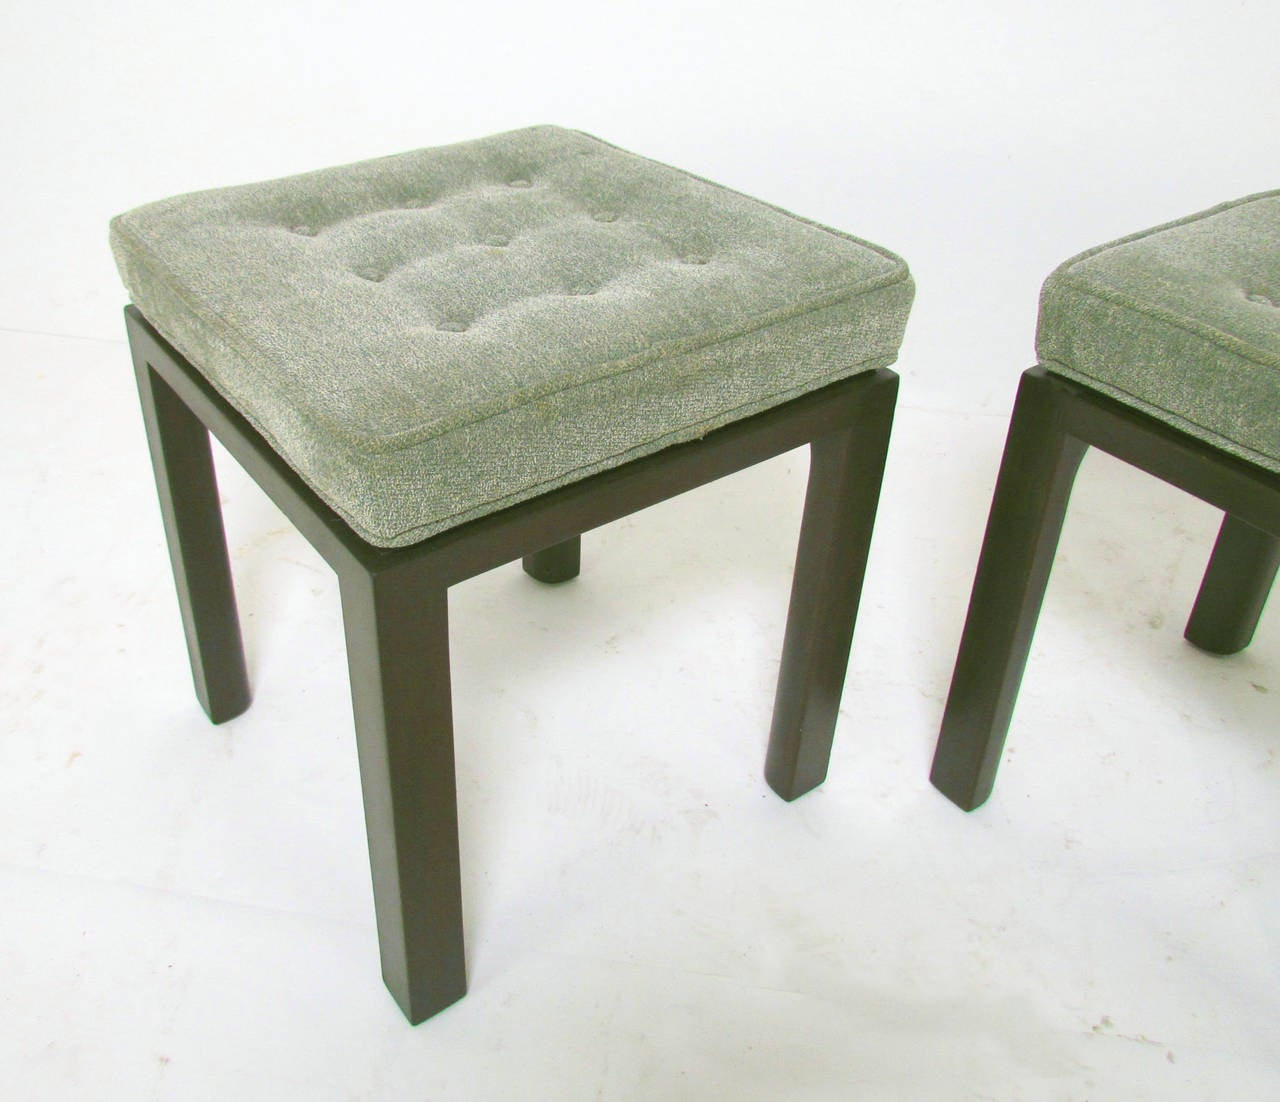 Pair Of Stools By Harvey Probber, Square Form With Quarter Rounded Legs.  Original